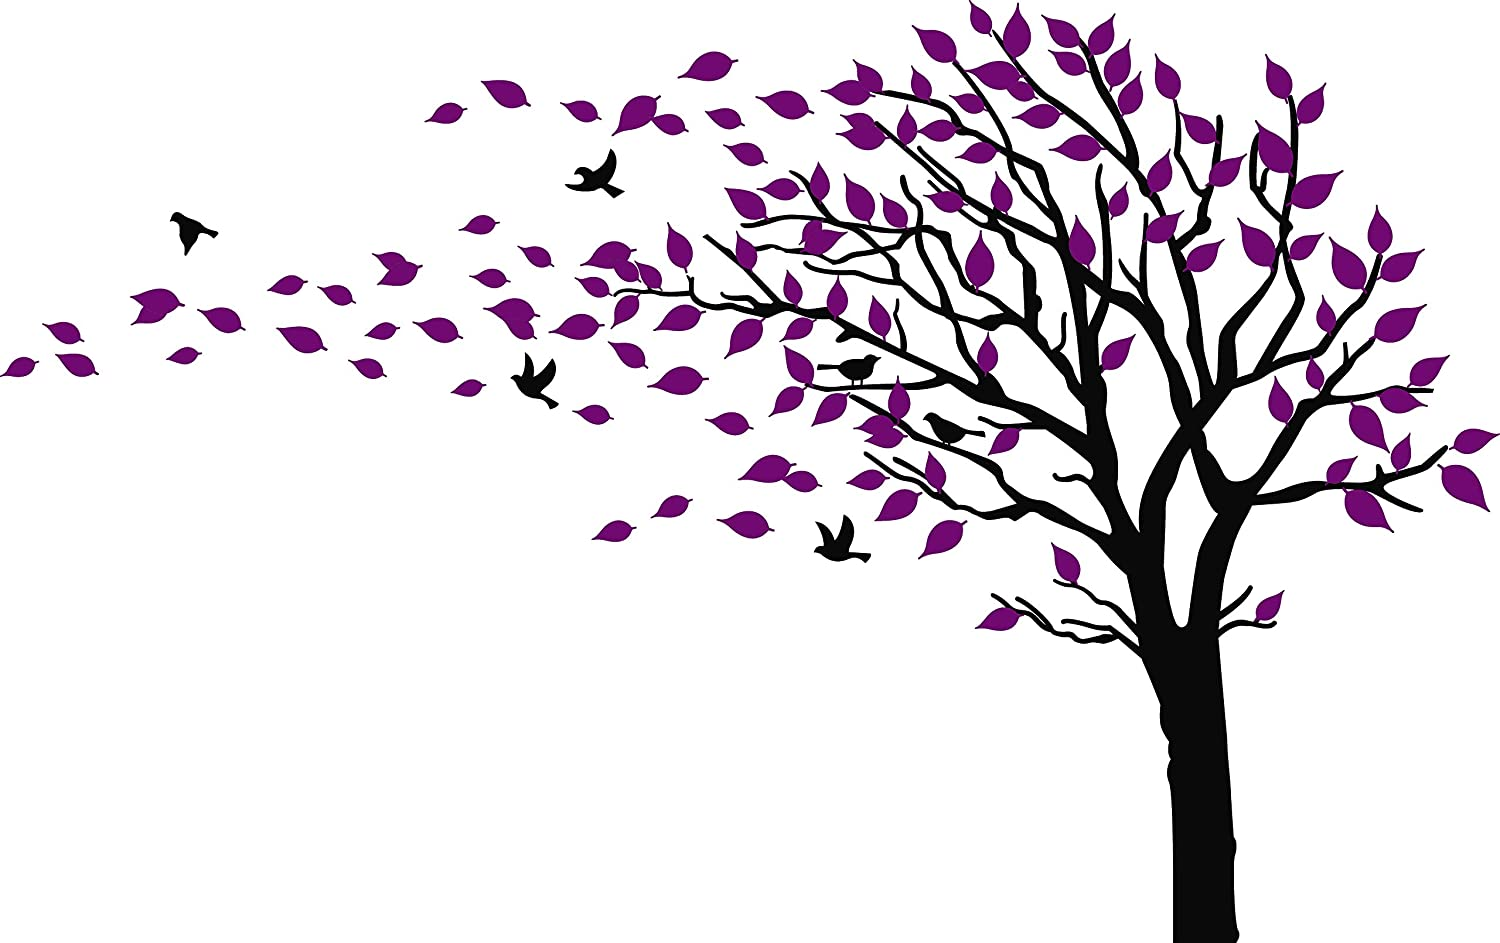 Large Tree Blowing in The Wind Tree Wall Decals Wall Sticker Vinyl Art Kids Rooms Teen Girls Boys Wallpaper Murals Sticker Wall Stickers Nursery Decor Nursery Decals (Black and Purple,Left)